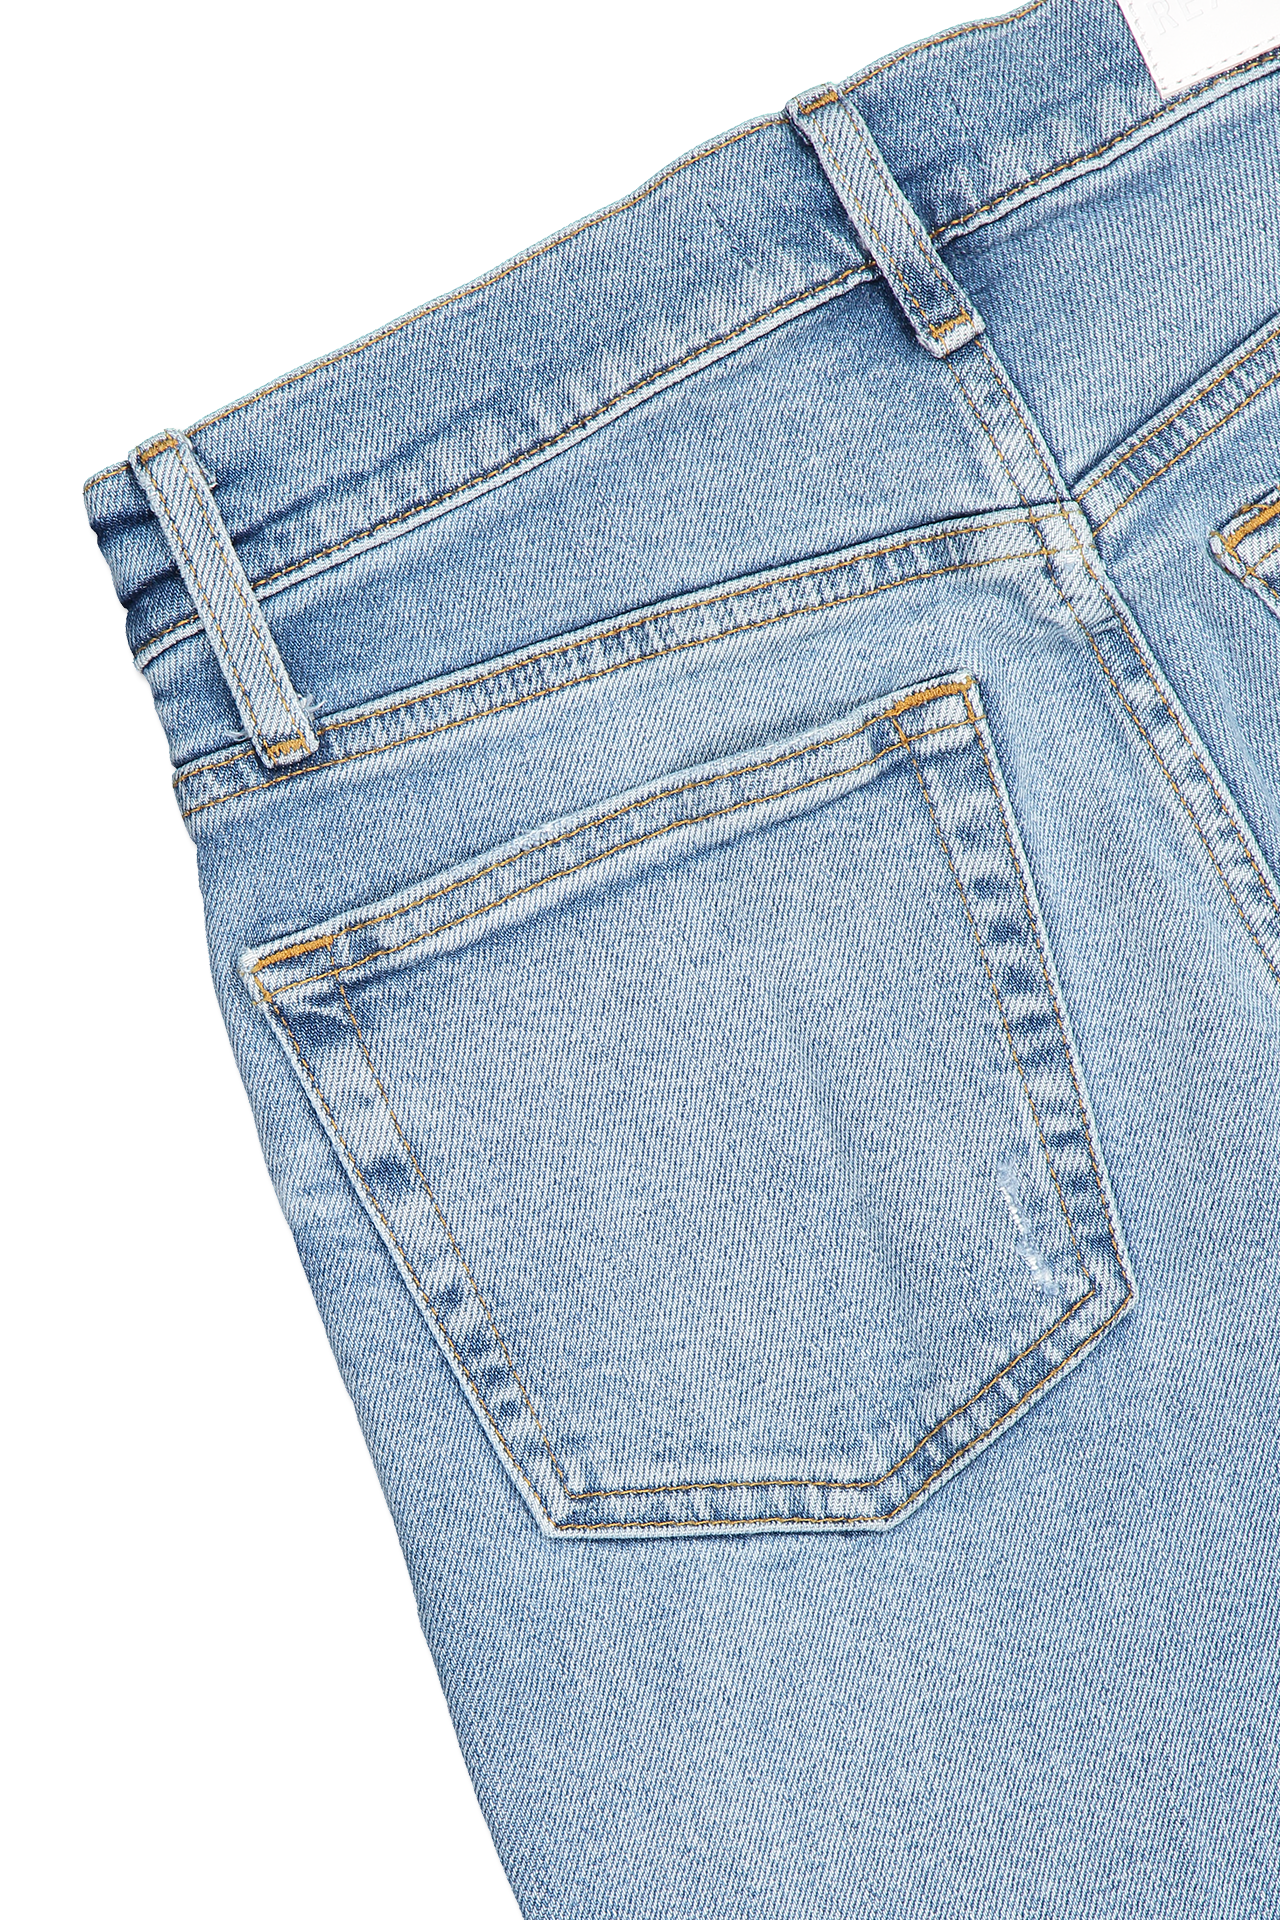 Back pocket detail image of RE/DONE High Rise Stove Pipe Denim